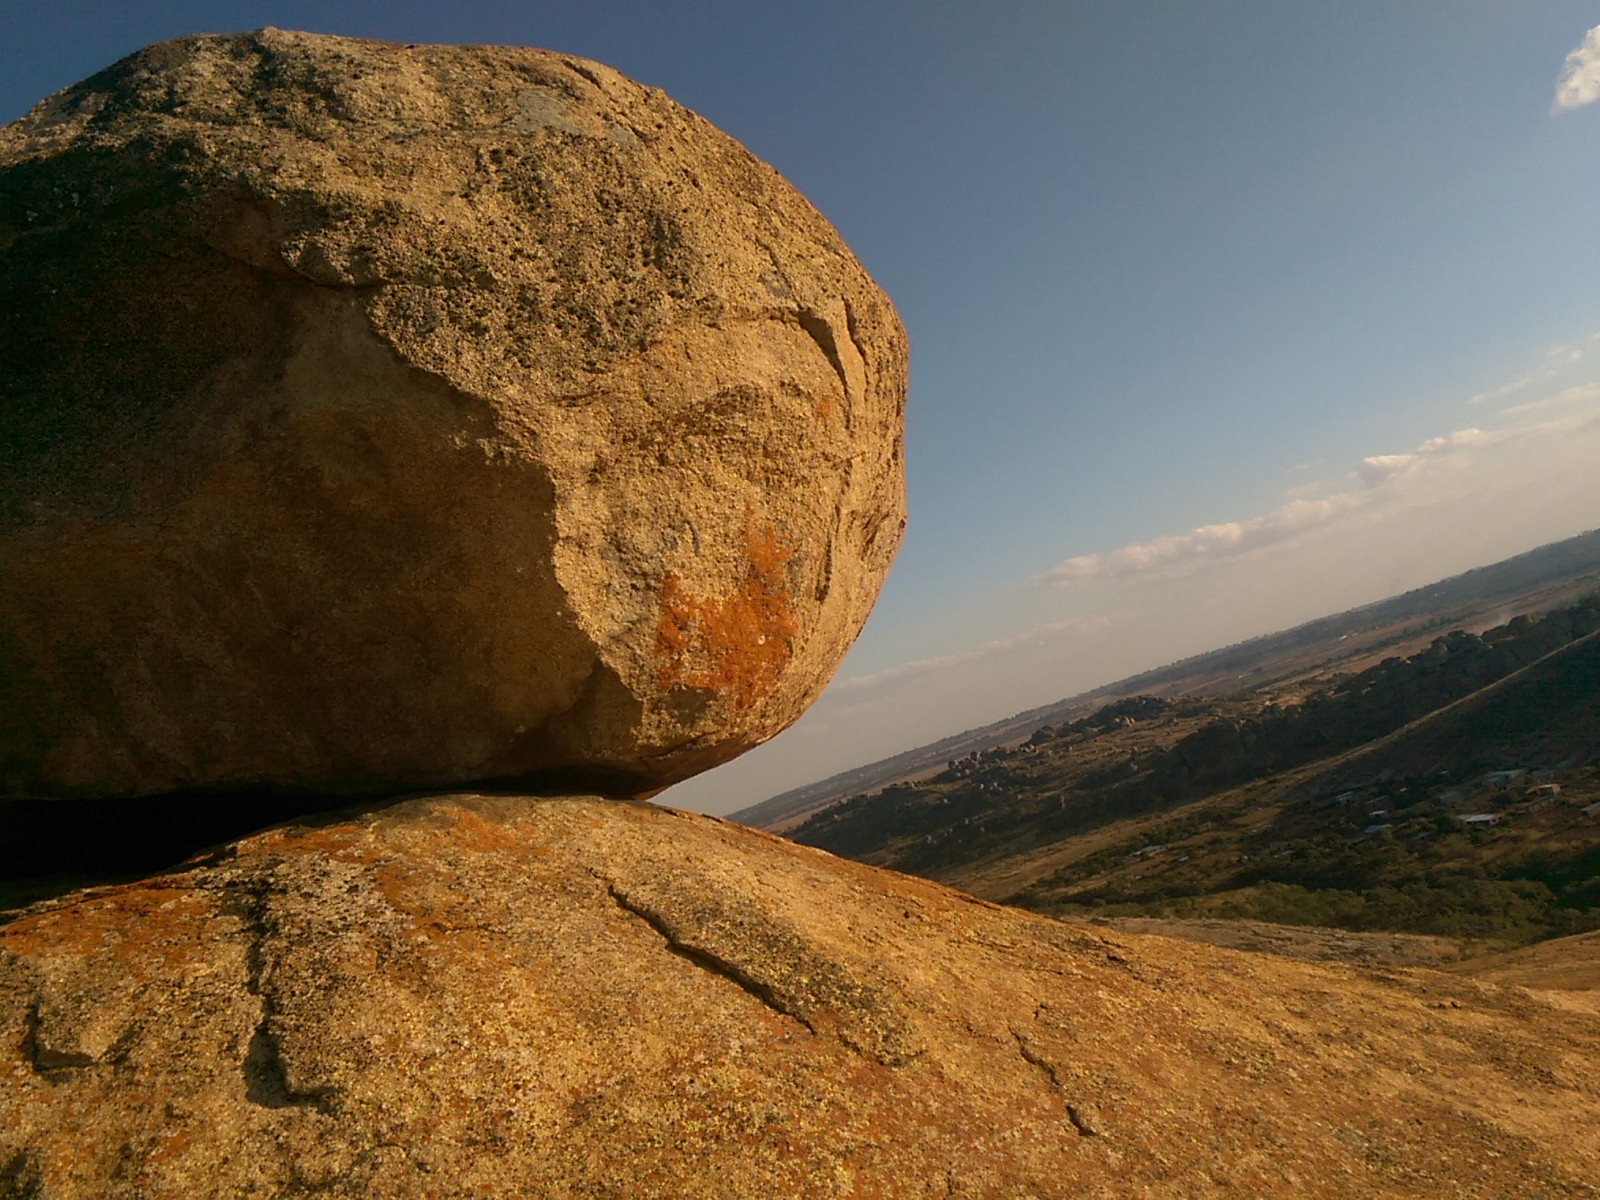 A large rock lit by the sun with a view across granite hills